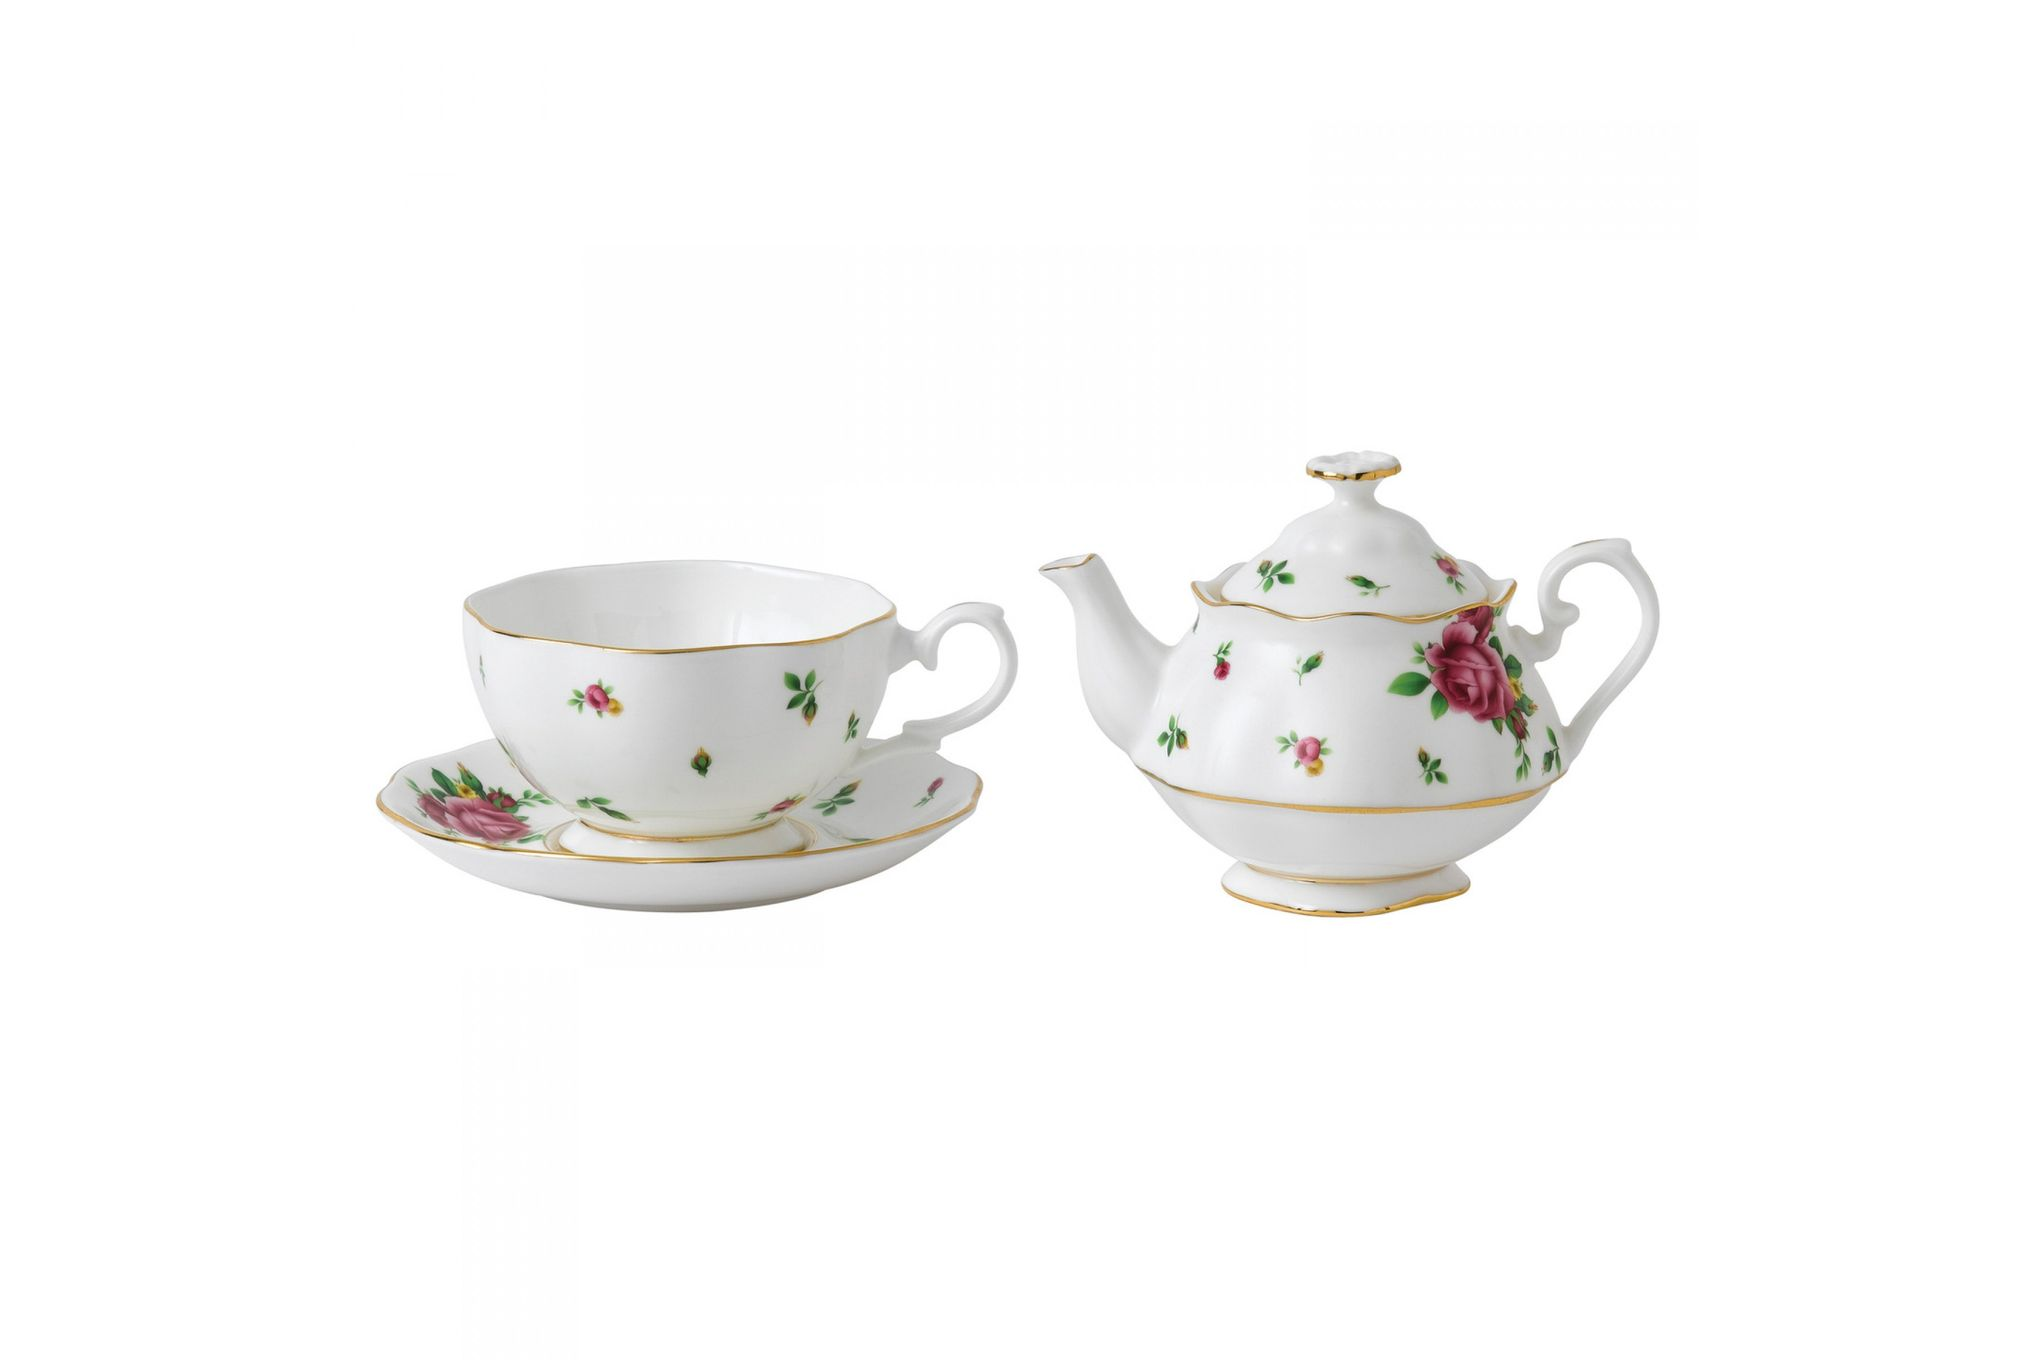 Royal Albert New Country Roses White Tea For One thumb 2